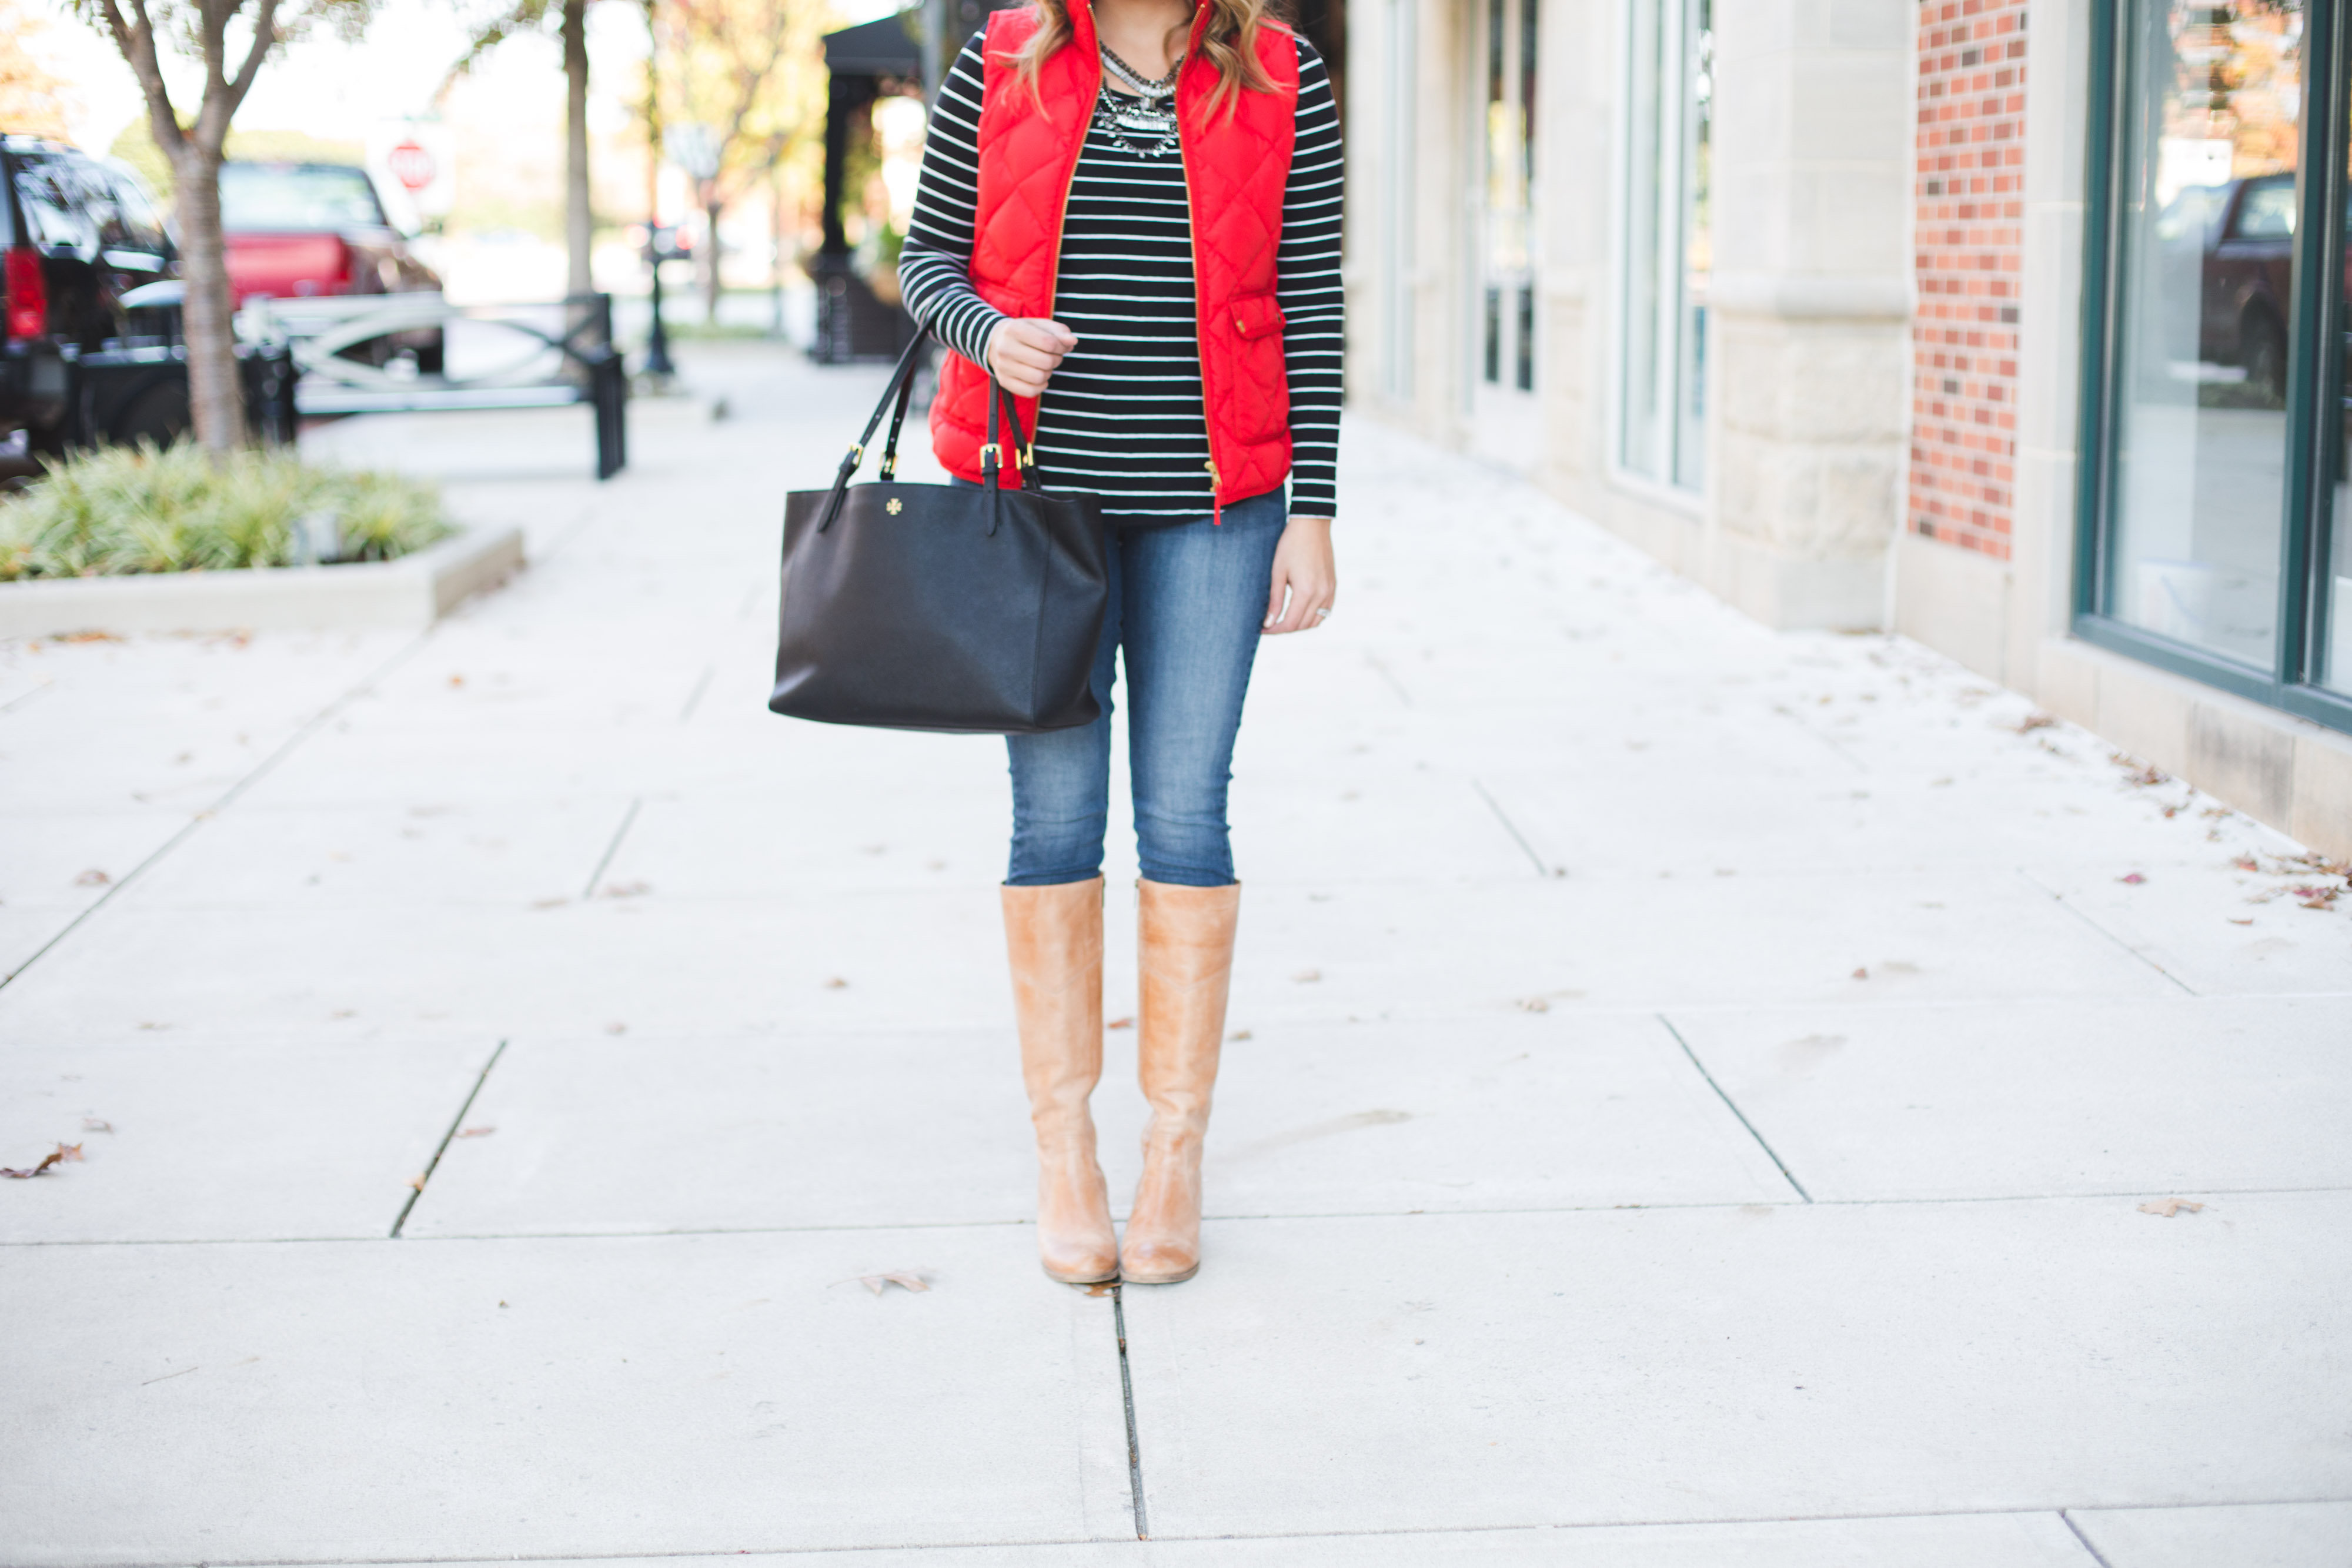 casual holiday outfit - red puffer vest, stripe tee, tan boots | www.bylaurenm.com